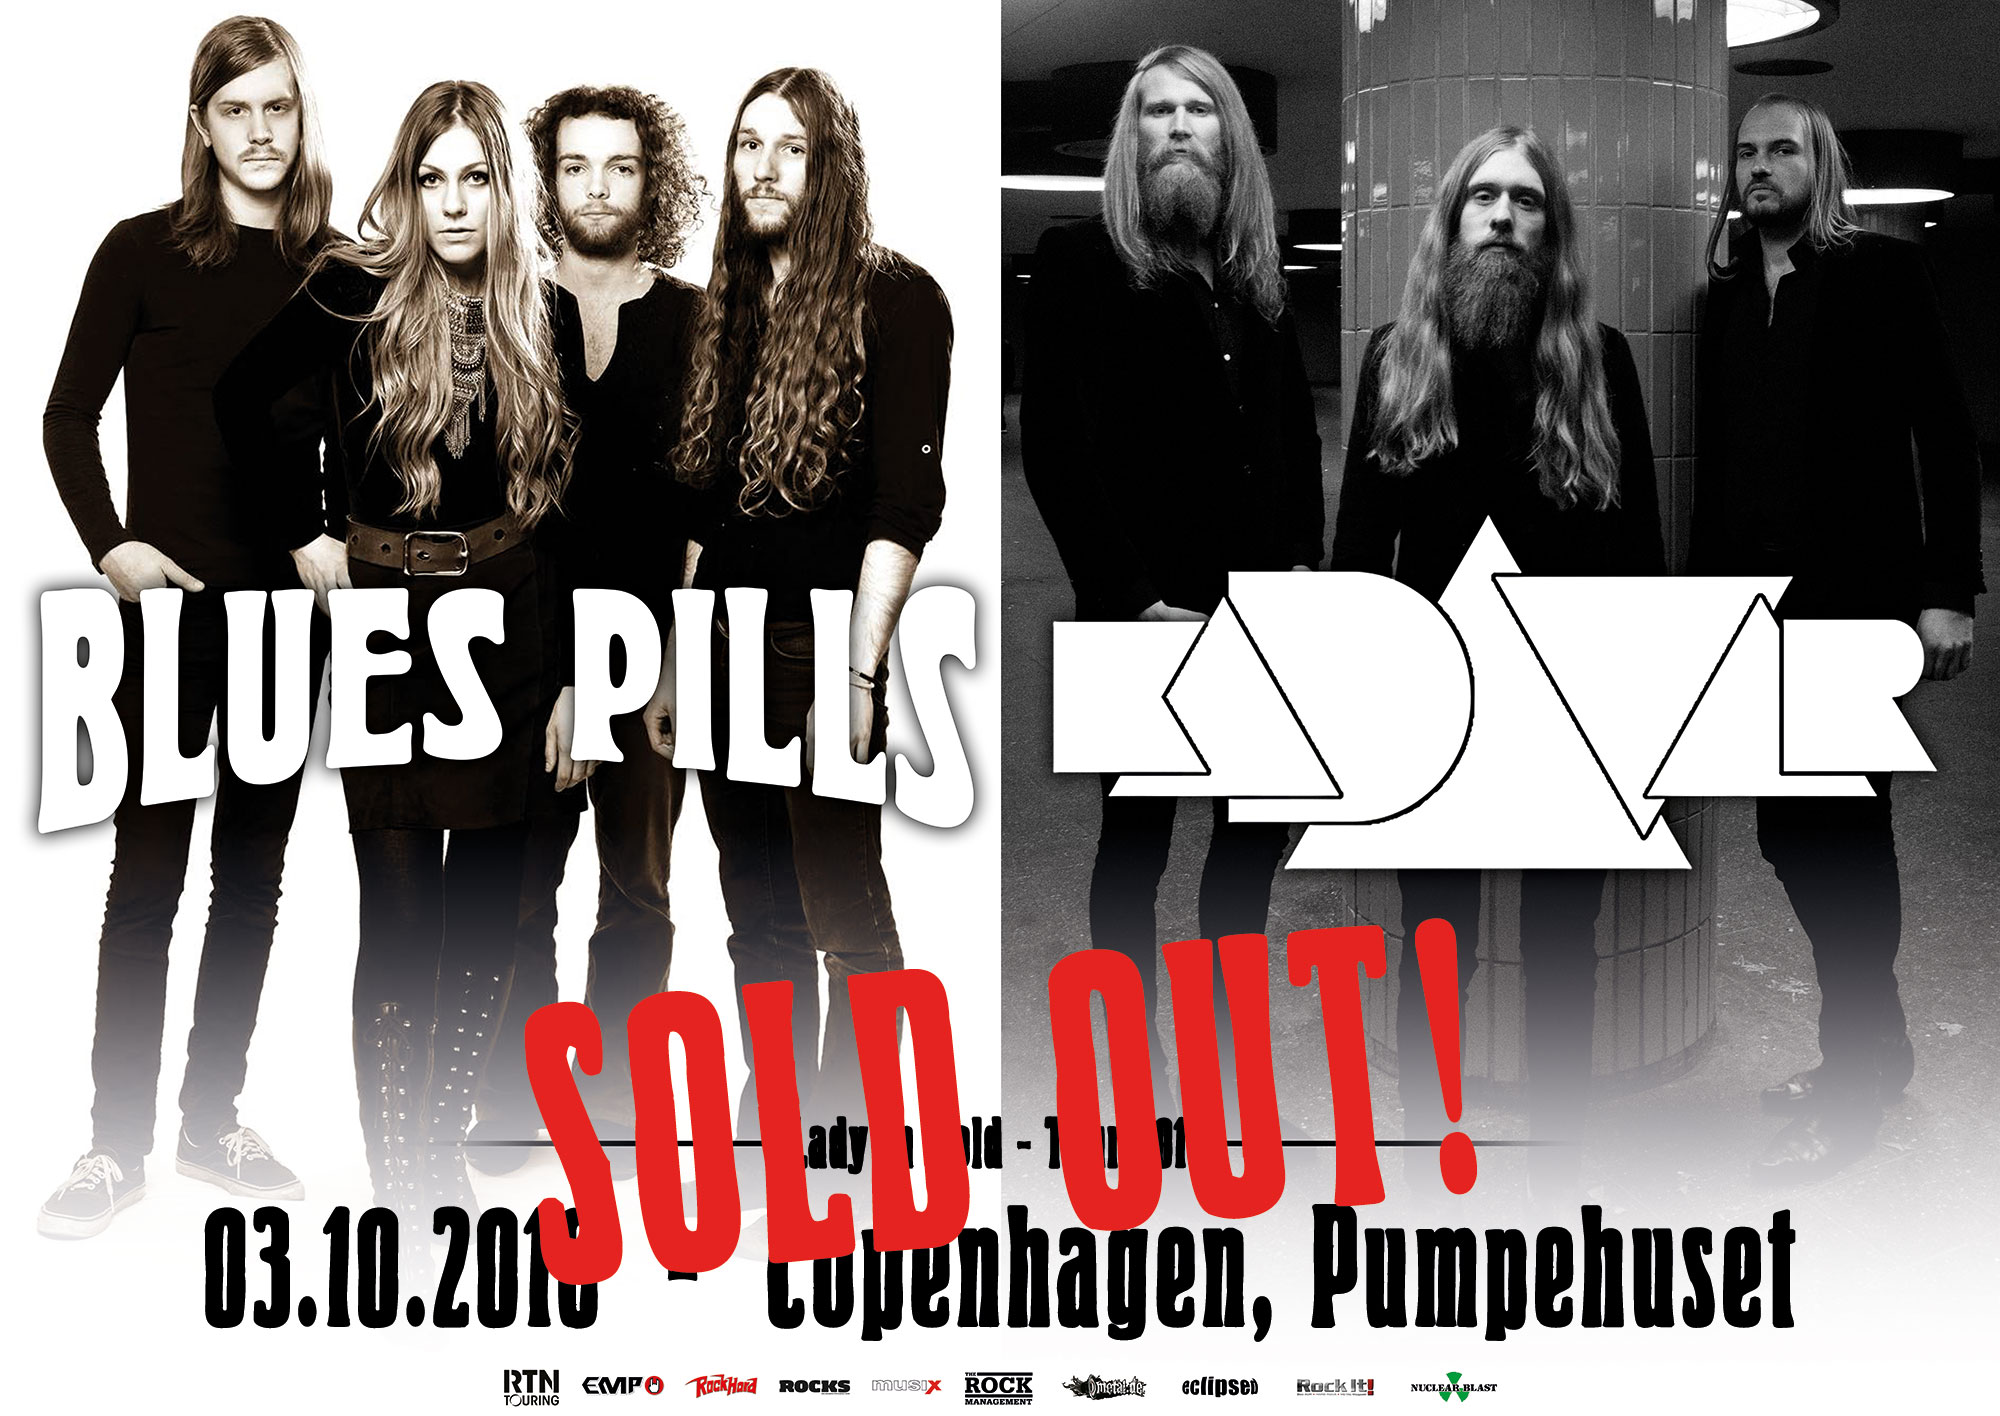 copenhagen sold out